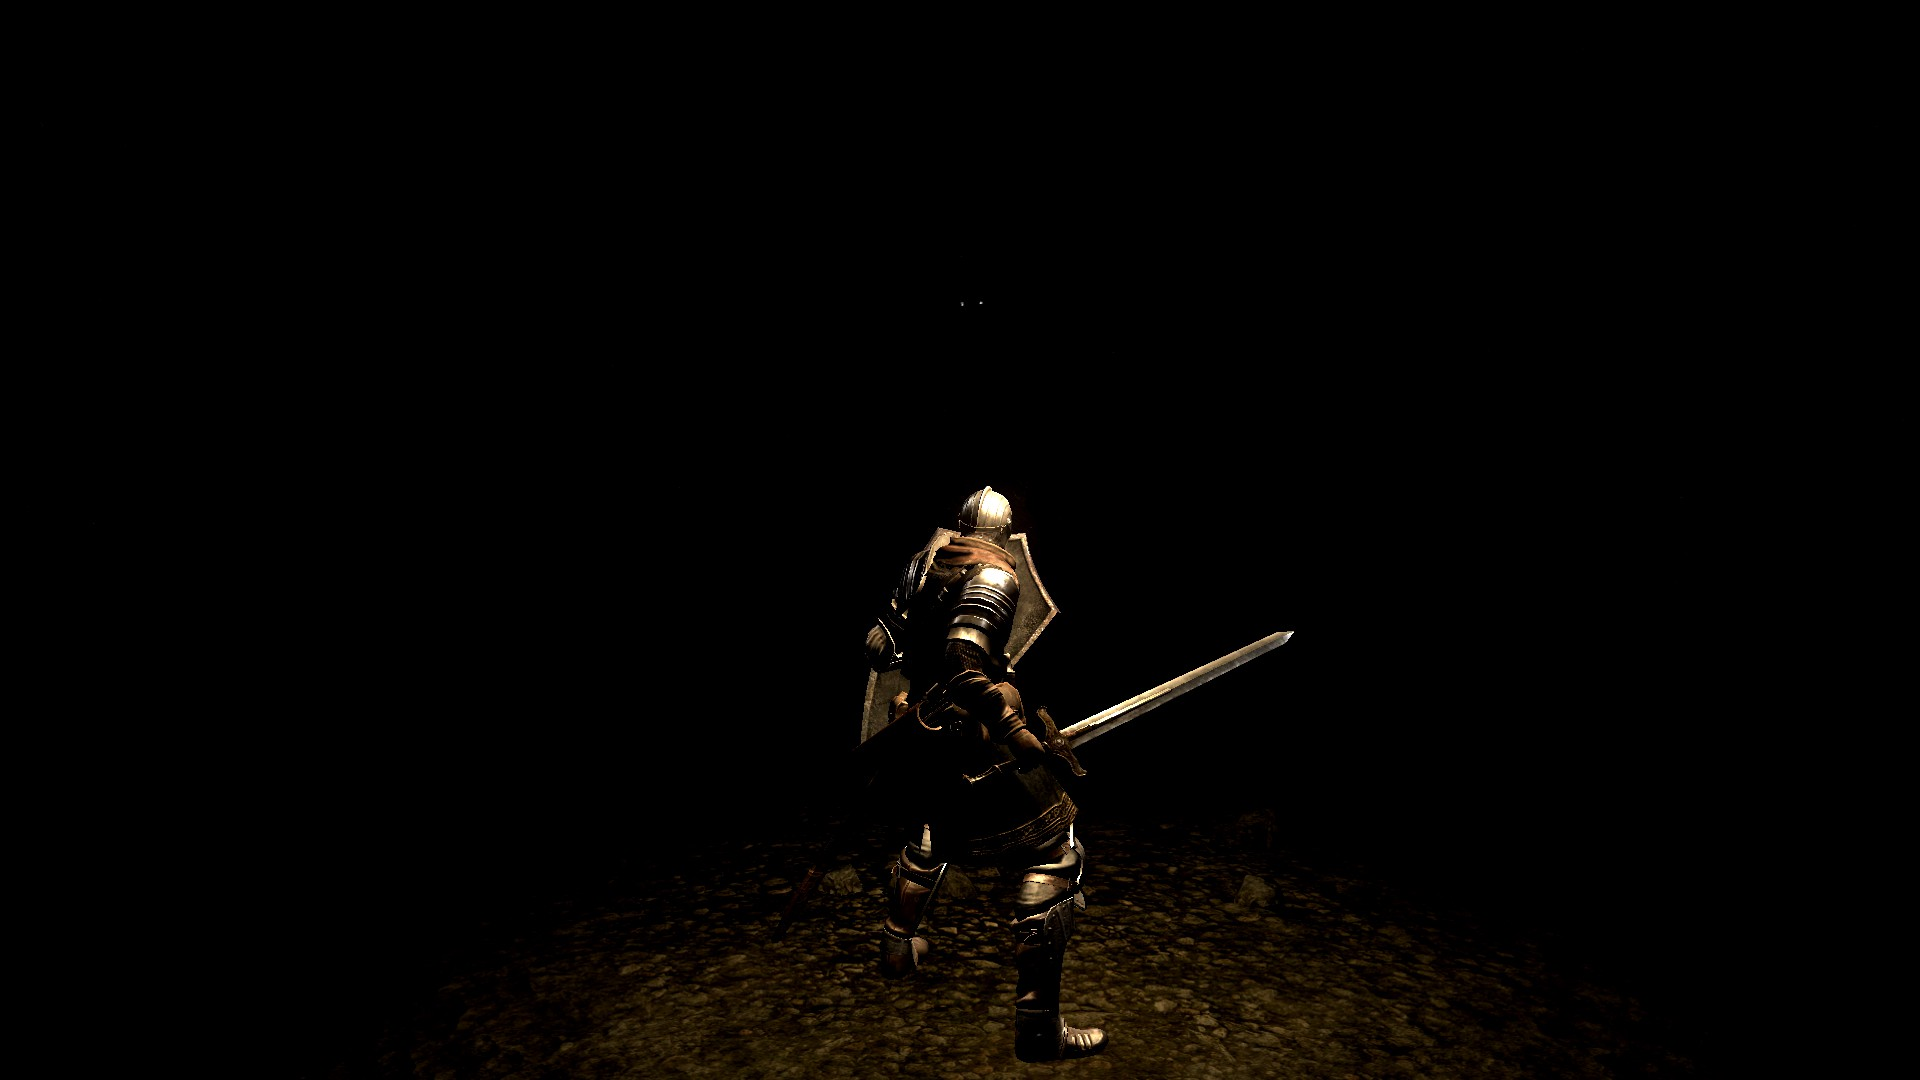 dark souls 1920x1080 wallpapers Archives   Page 3 of 4   1920x1080 1920x1080